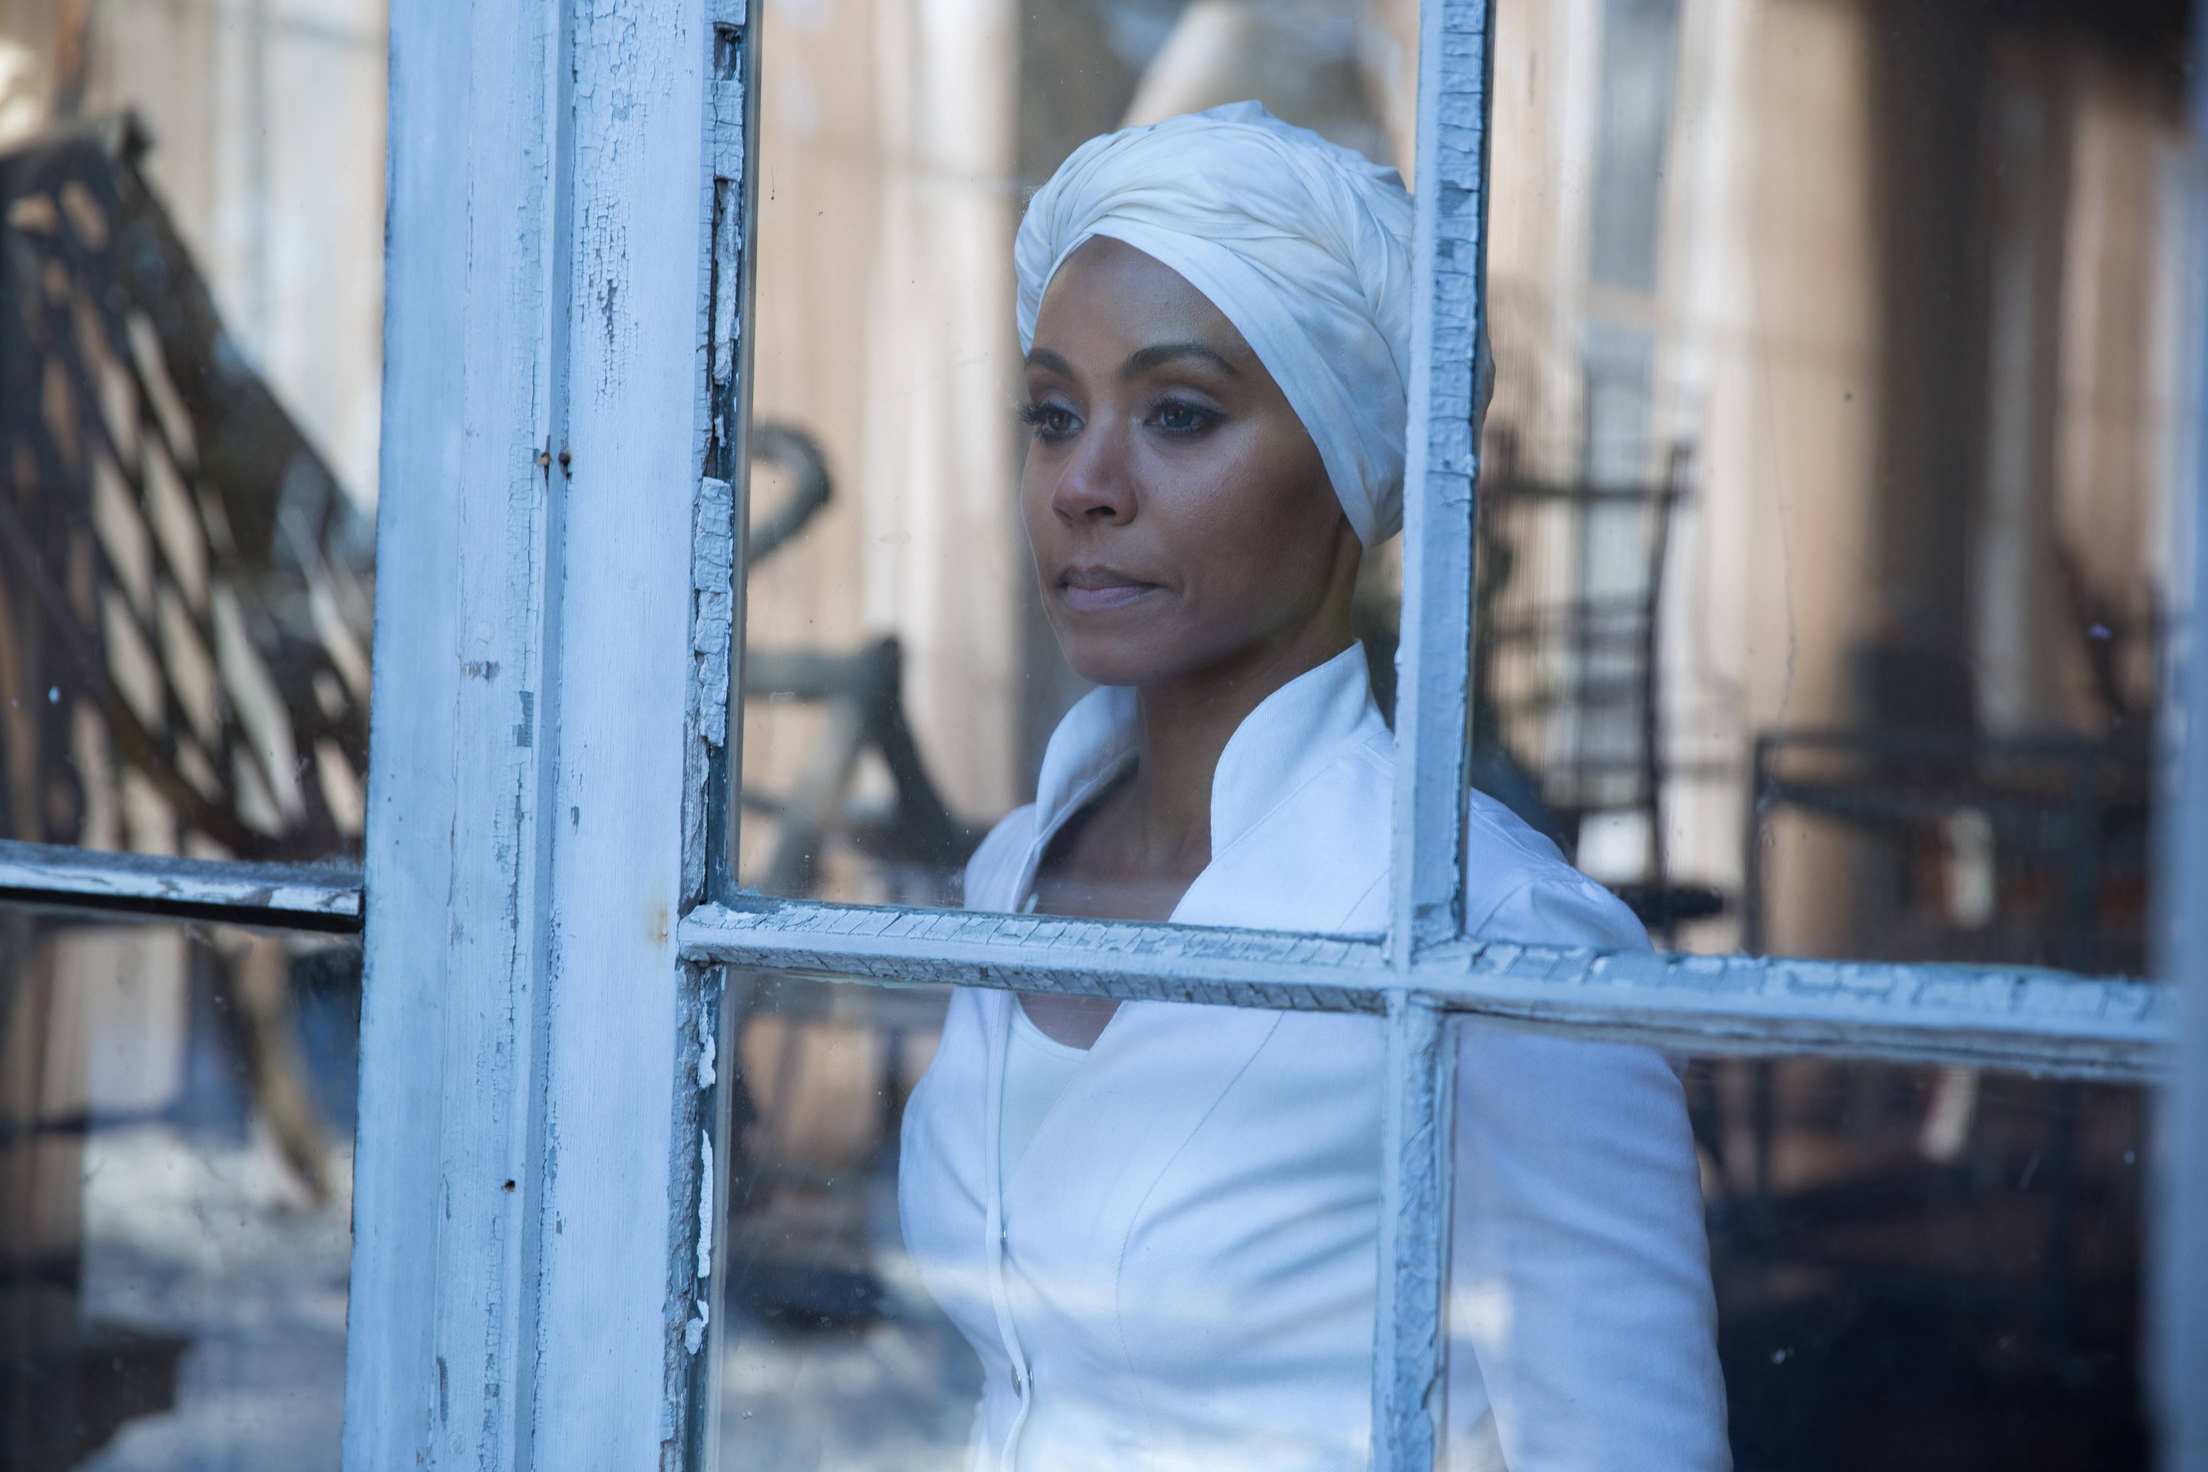 """GOTHAM: Fish Mooney (Jada Pinkett Smith) contemplates her fate in the """"Beasts of Prey"""" episode of GOTHAM airing Monday, April 13 (8:00-9:00 PM ET/PT) on FOX. ©2015 Fox Broadcasting Co. Cr: Jessica Miglio/FOX"""